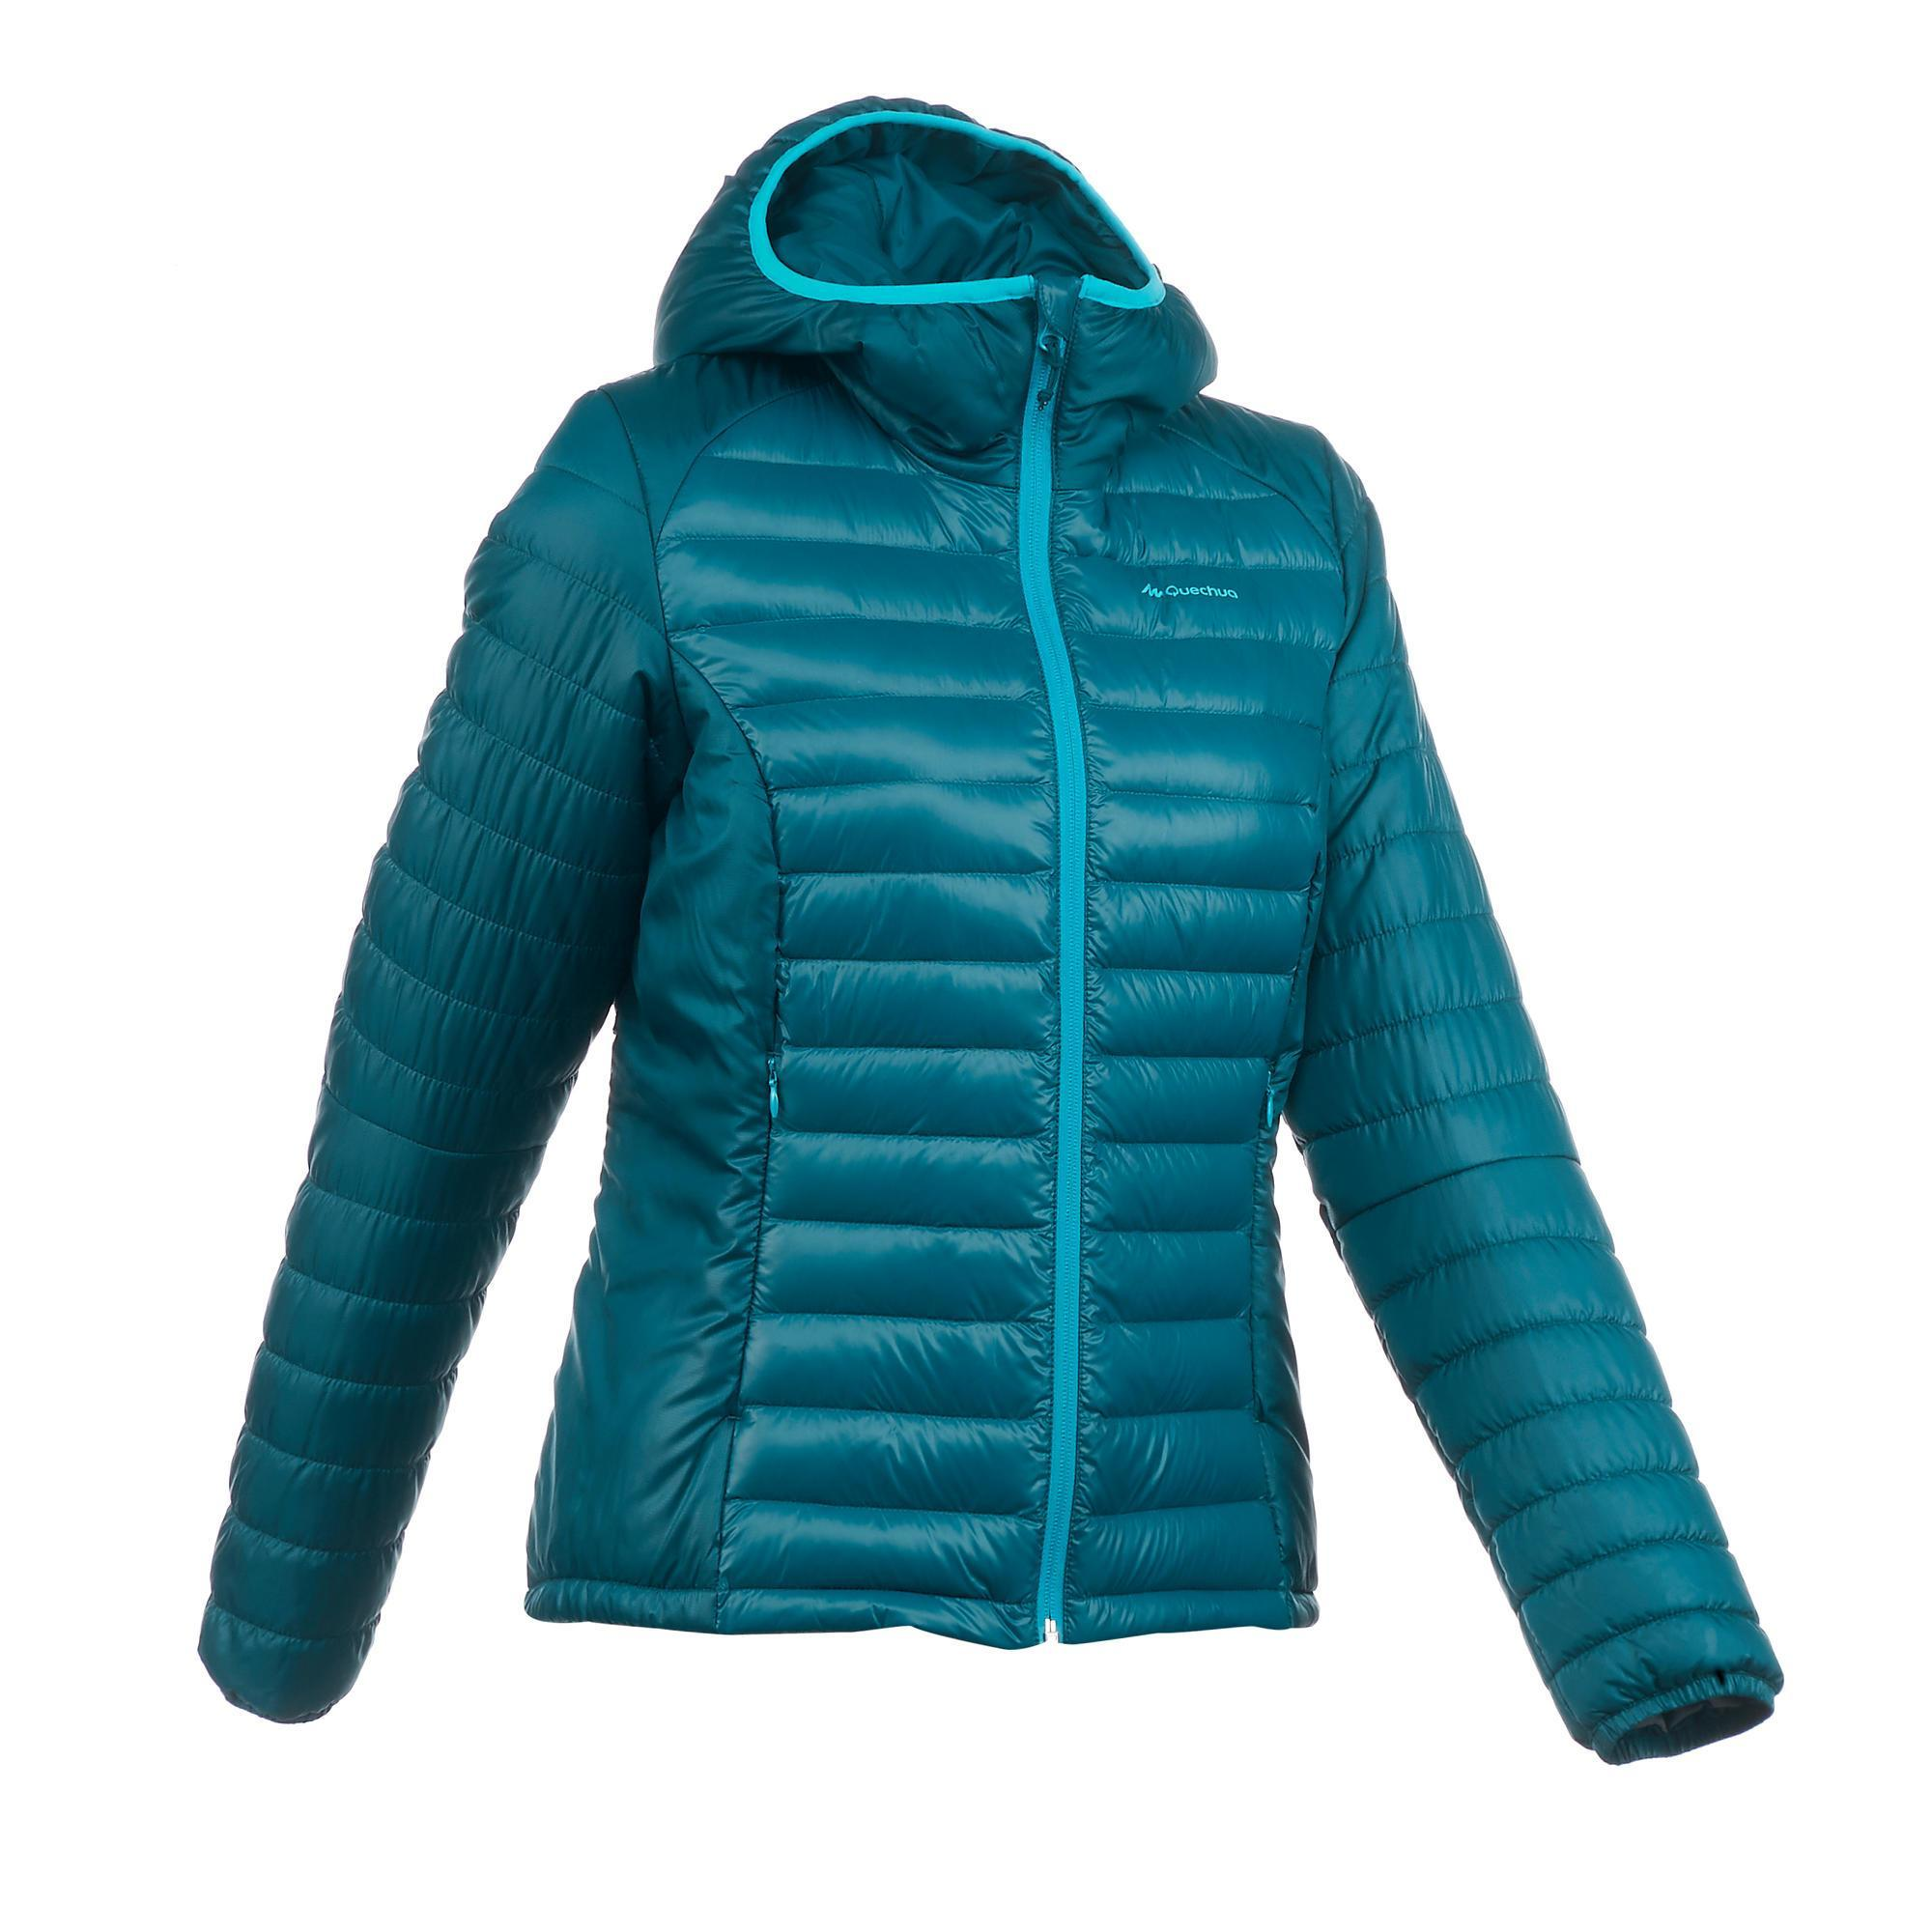 X Light 1 Women S Trekking Down Jacket Turquoise Quechua